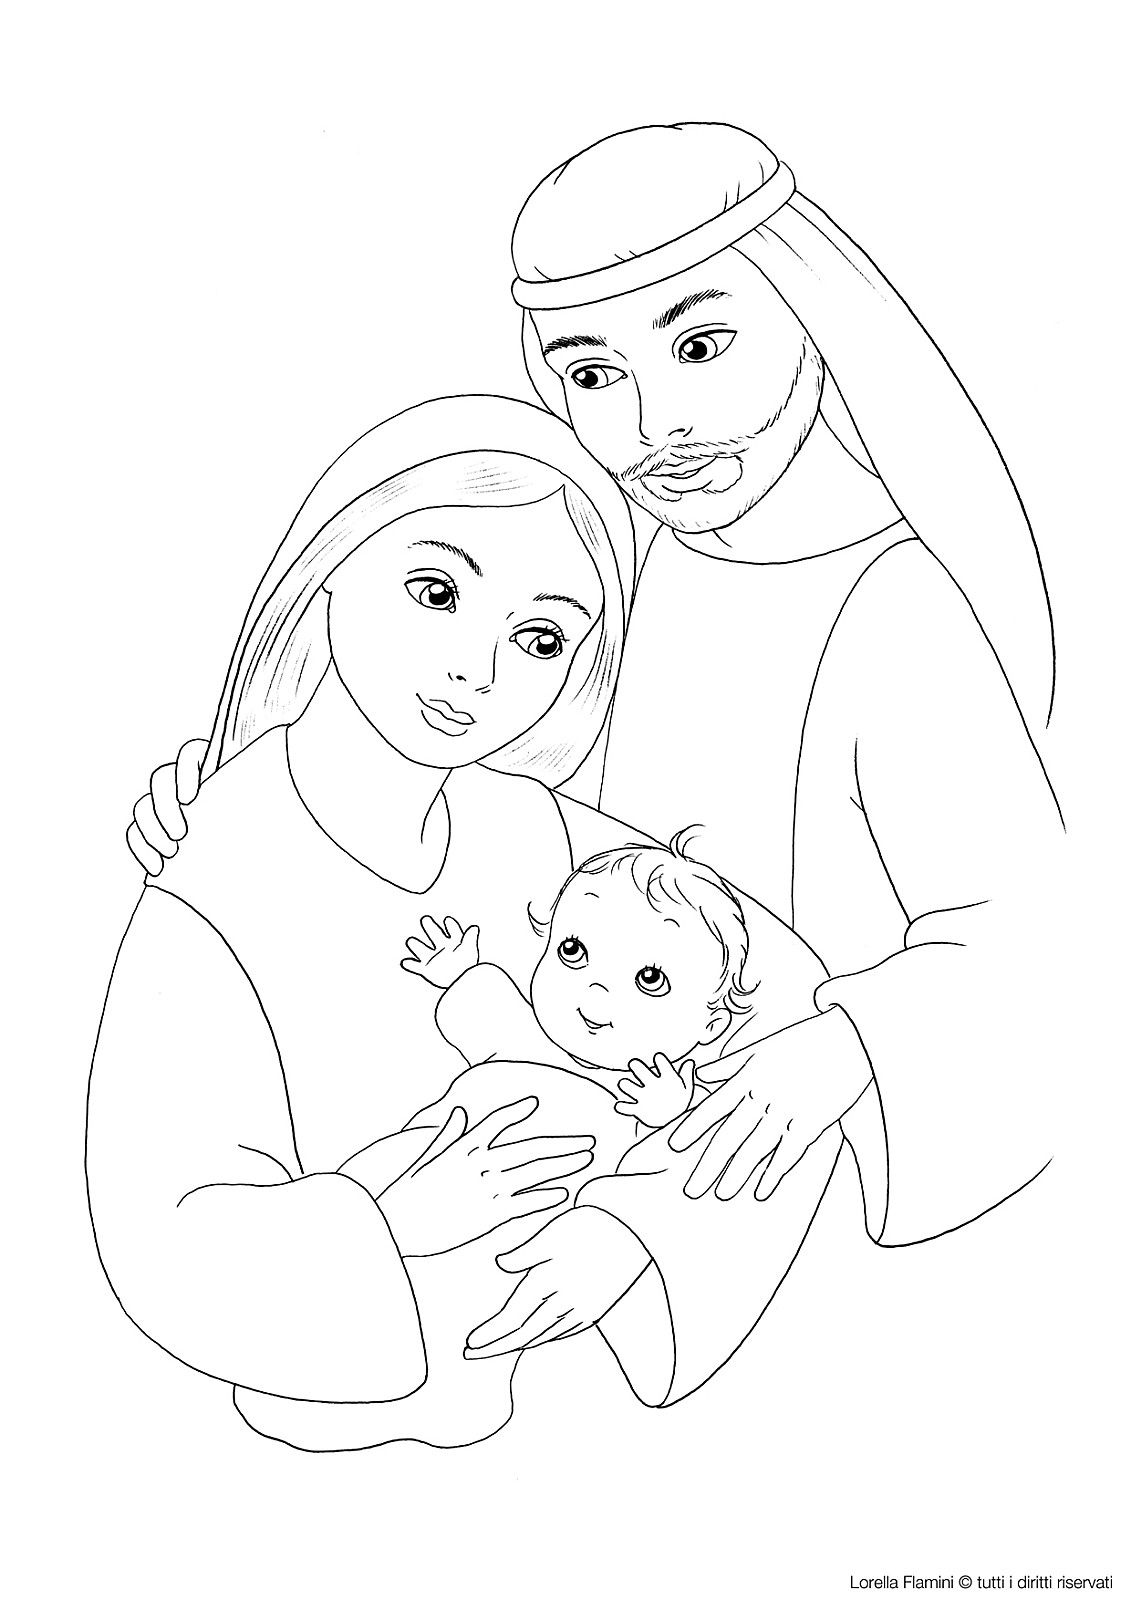 coloring pages bible jesus mary | Jesus Mary and Joseph Coloring Page | Sunday School ...